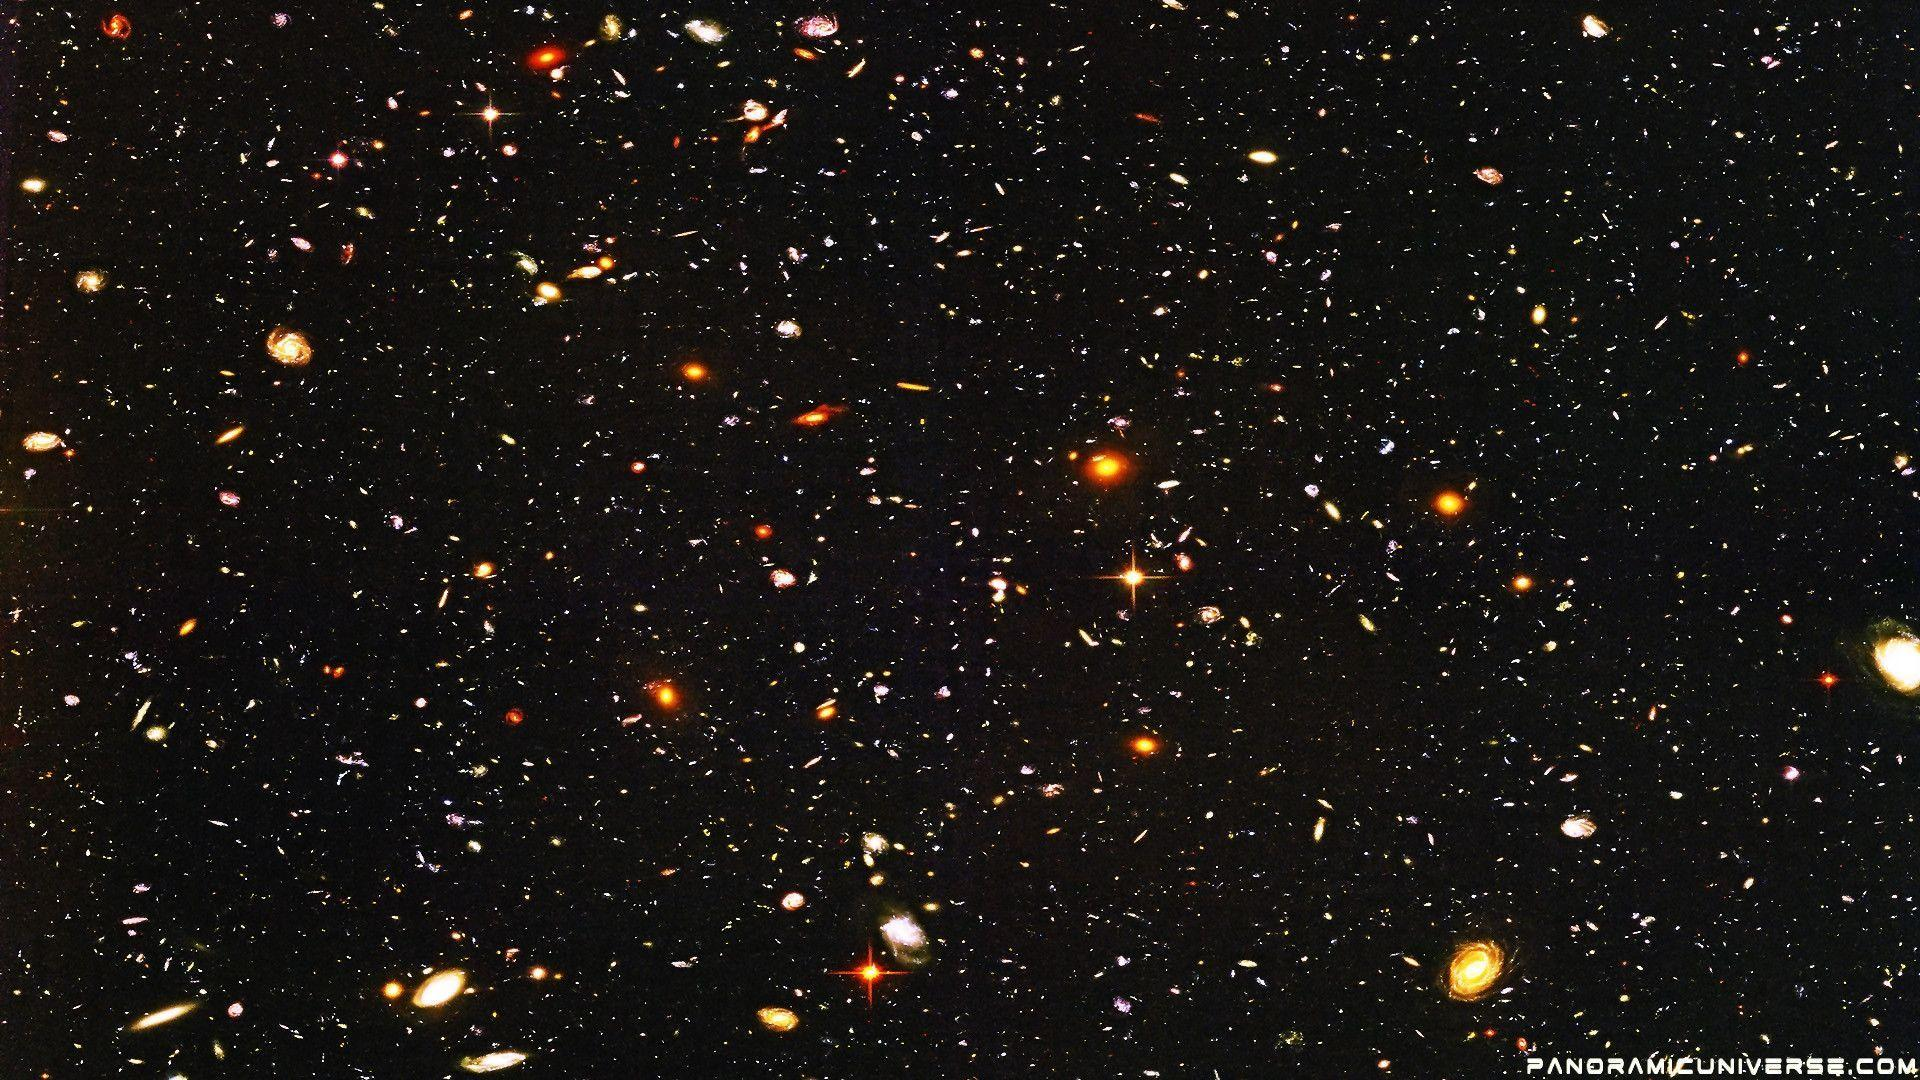 hubble deep field wallpaper 1600x1200-#9